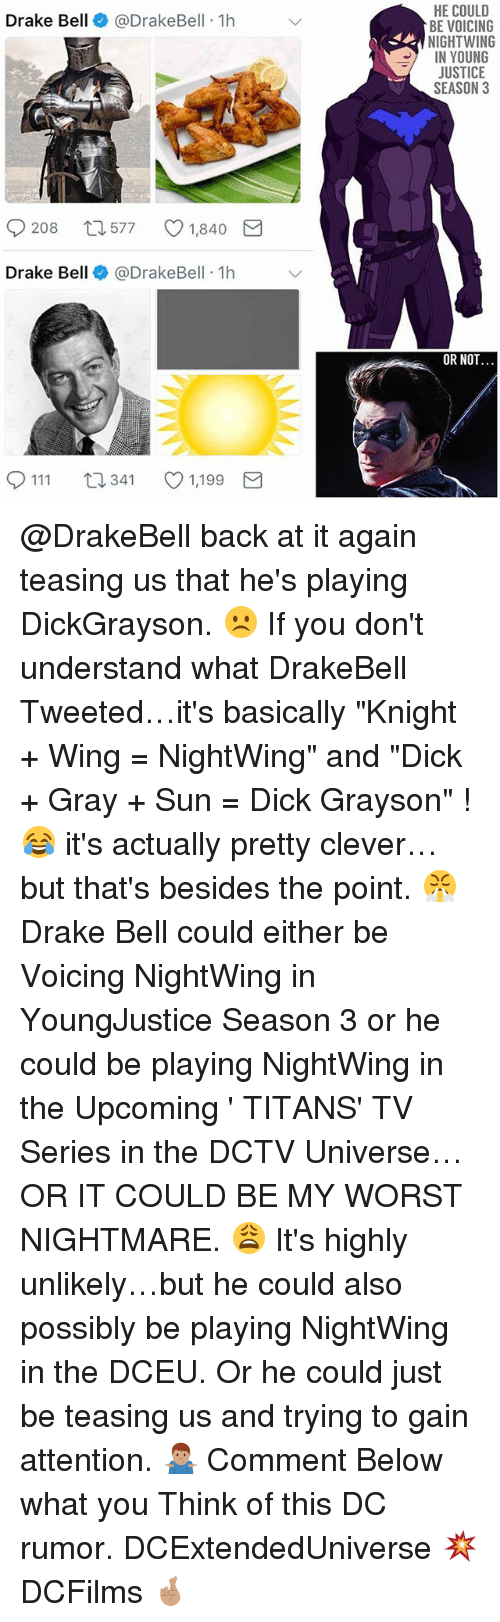 """Cleverity: HE COULD  BE VOICING  NIGHTWING  IN YOUNG  JUSTICE  SEASON 3  Drake Bell@DrakeBell 1h  208  577  1,840  Drake Bell @DrakeBell 1h  OR NOT  0111 t  341 1,199 @DrakeBell back at it again teasing us that he's playing DickGrayson. ☹️ If you don't understand what DrakeBell Tweeted…it's basically """"Knight + Wing = NightWing"""" and """"Dick + Gray + Sun = Dick Grayson"""" ! 😂 it's actually pretty clever…but that's besides the point. 😤 Drake Bell could either be Voicing NightWing in YoungJustice Season 3 or he could be playing NightWing in the Upcoming ' TITANS' TV Series in the DCTV Universe…OR IT COULD BE MY WORST NIGHTMARE. 😩 It's highly unlikely…but he could also possibly be playing NightWing in the DCEU. Or he could just be teasing us and trying to gain attention. 🤷🏽♂️ Comment Below what you Think of this DC rumor. DCExtendedUniverse 💥 DCFilms 🤞🏽"""